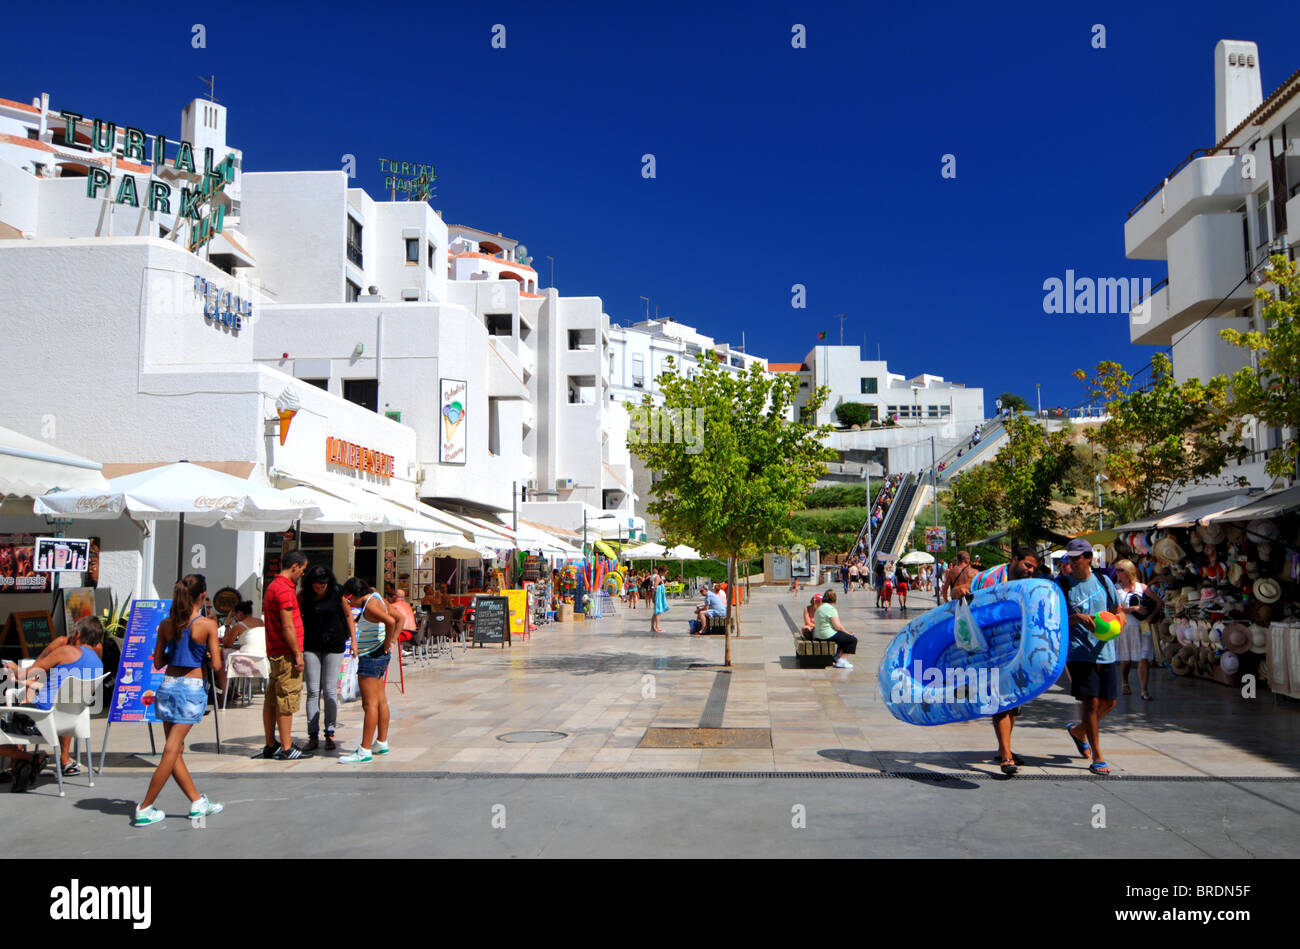 Albufeira resort, The Algarve, Portugal - Stock Image